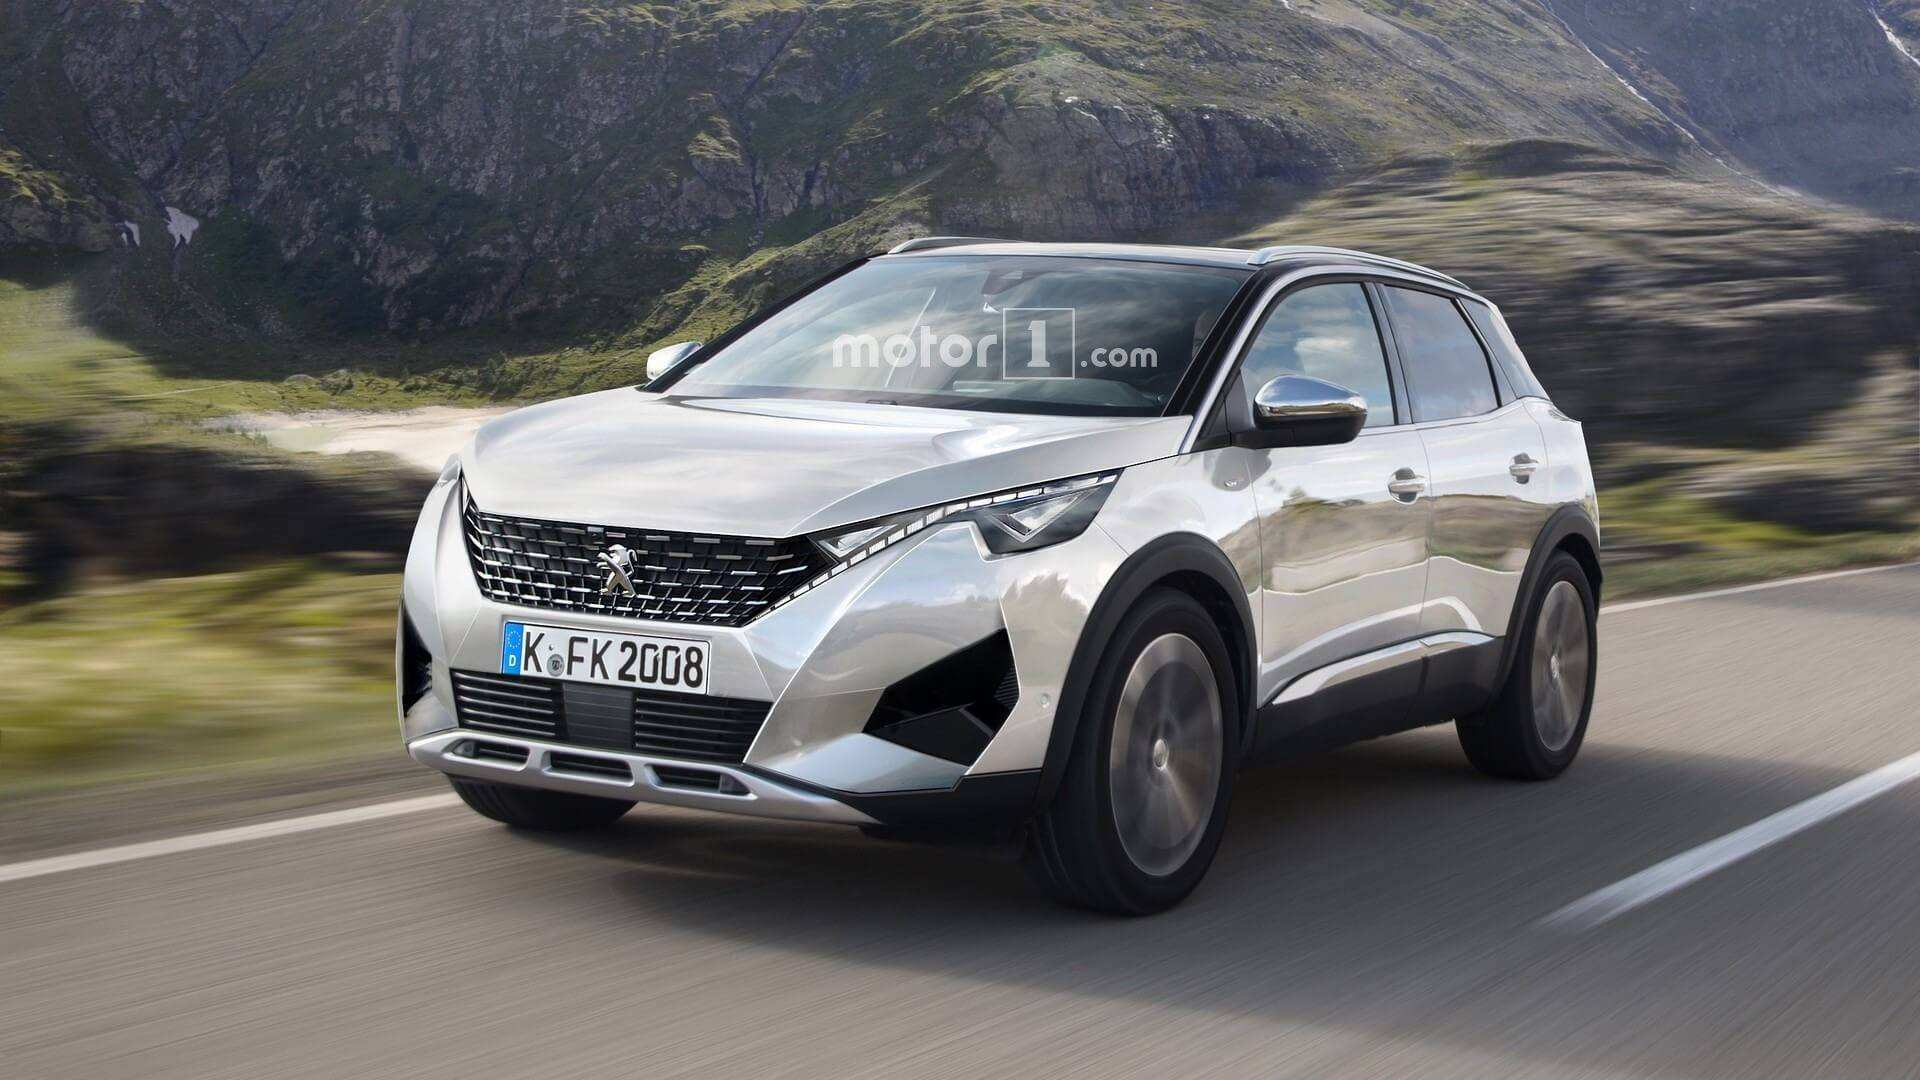 55 New Peugeot Electric 2019 Pictures for Peugeot Electric 2019